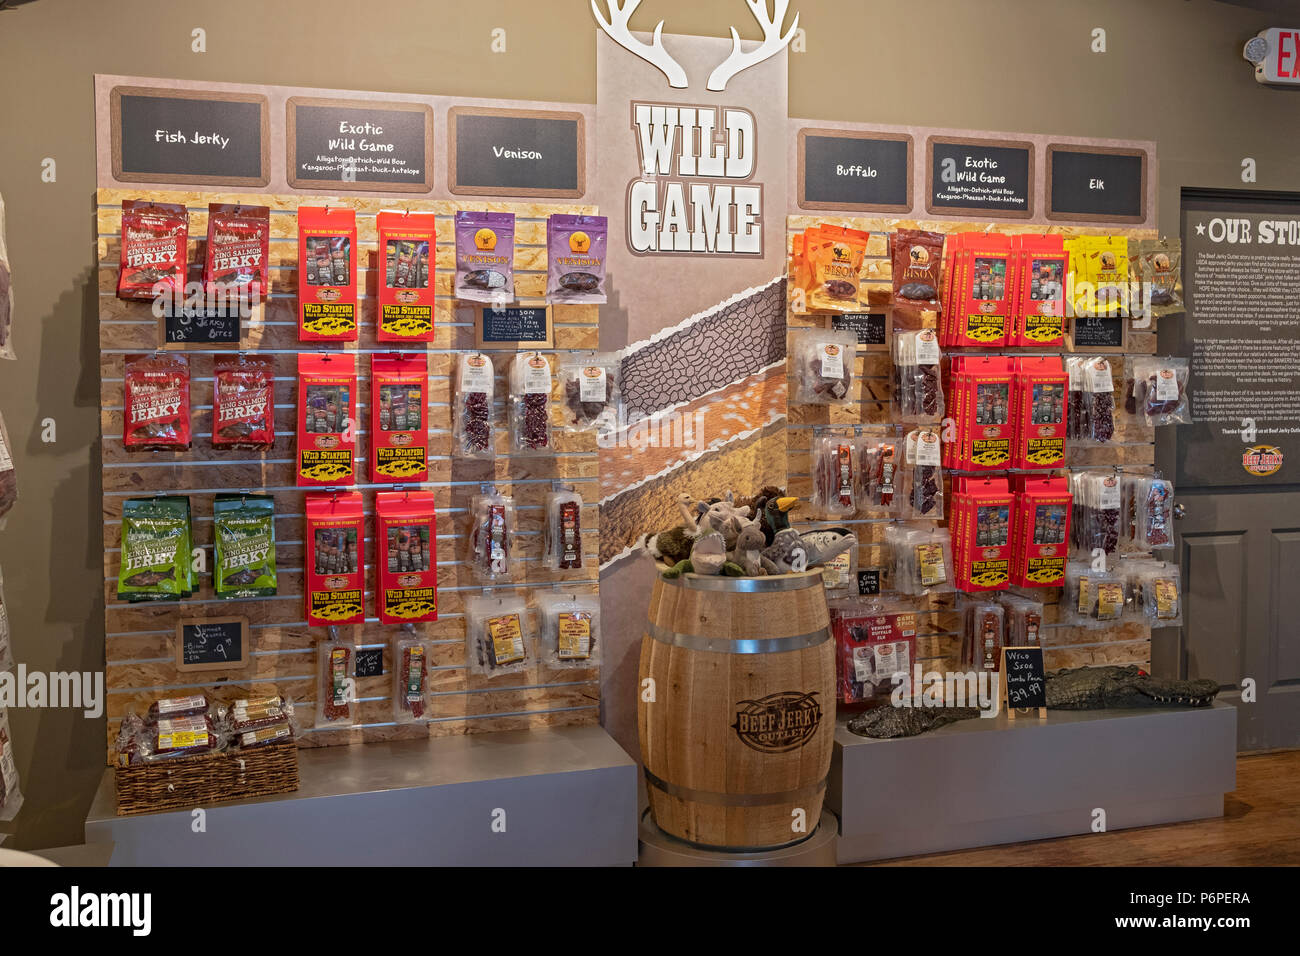 A Selection Of Wild Game Flavors Of Beef Jerky For Sale At